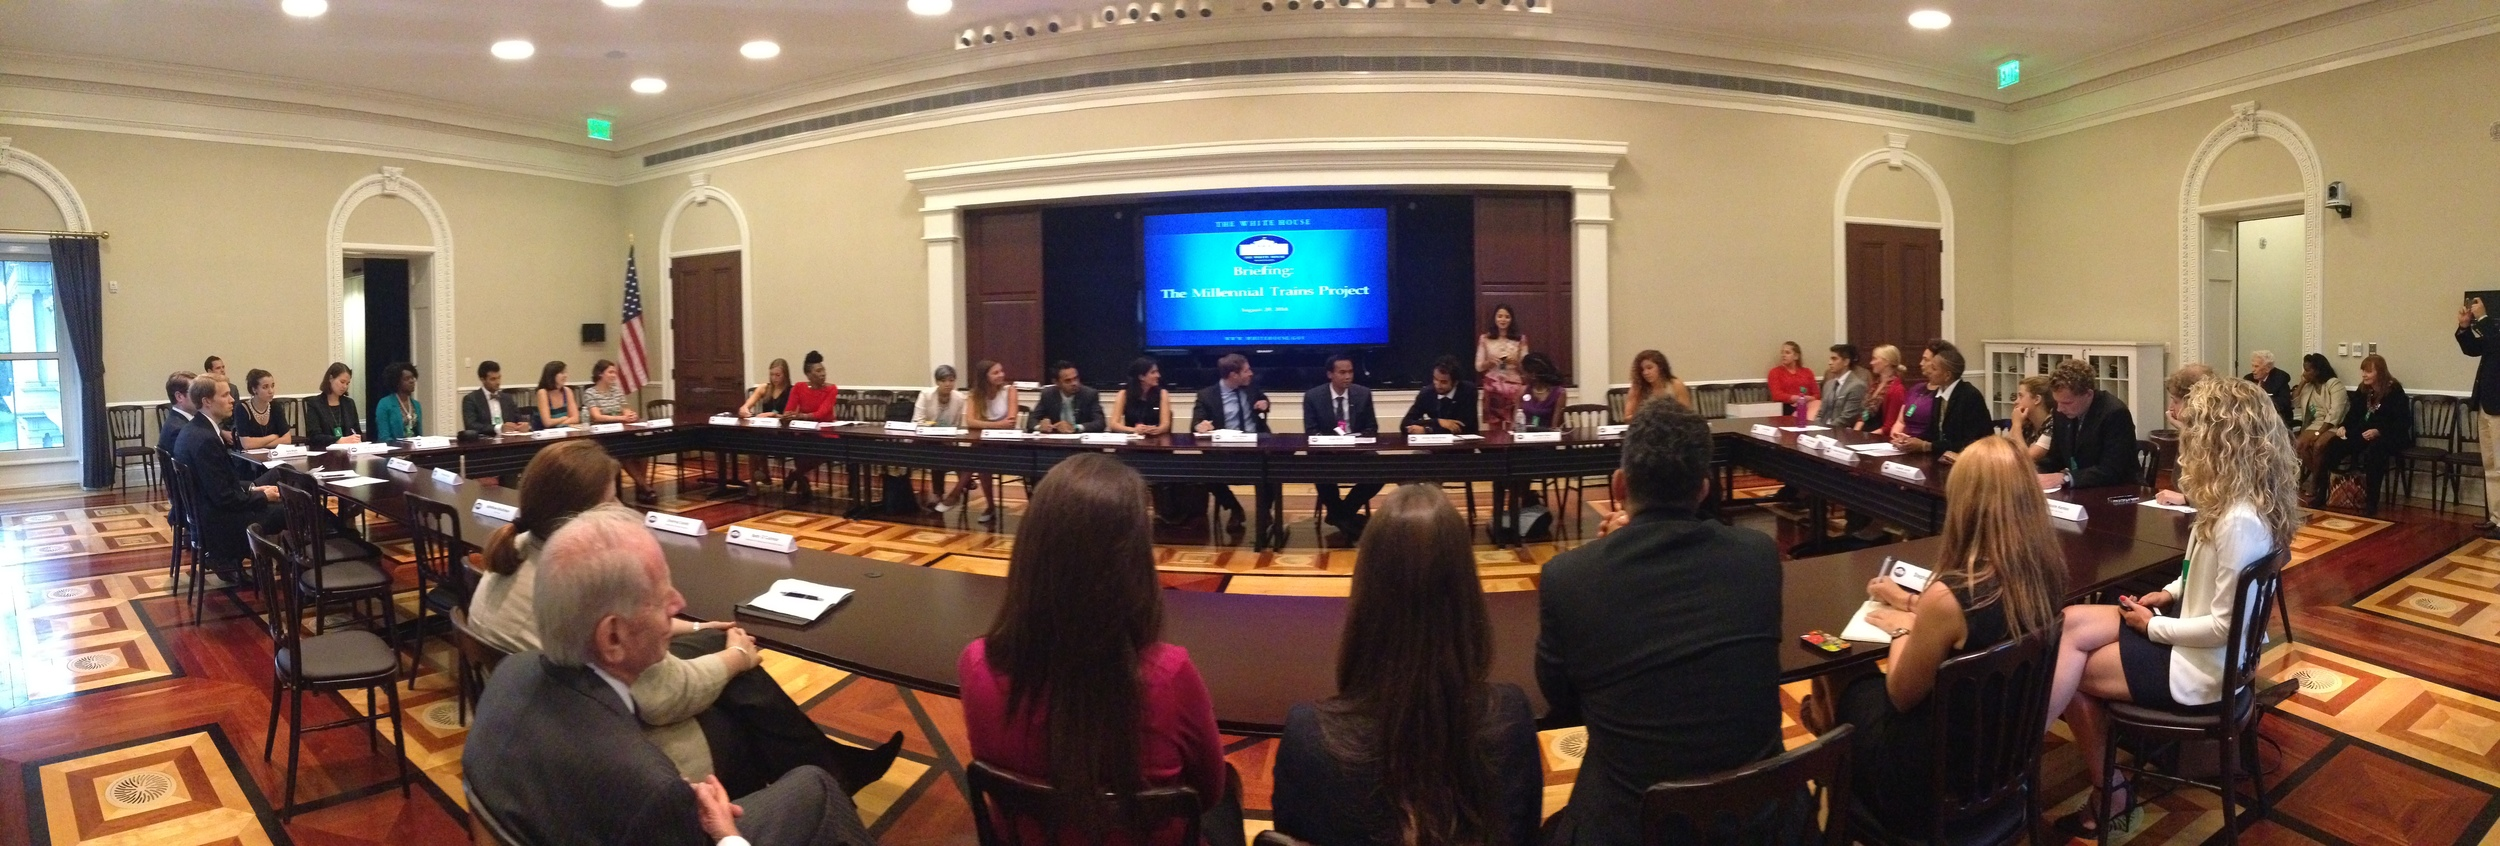 8/20/14  | Our journey concluded with an event at the White House where participants shared their experience to millennial White House staffers.